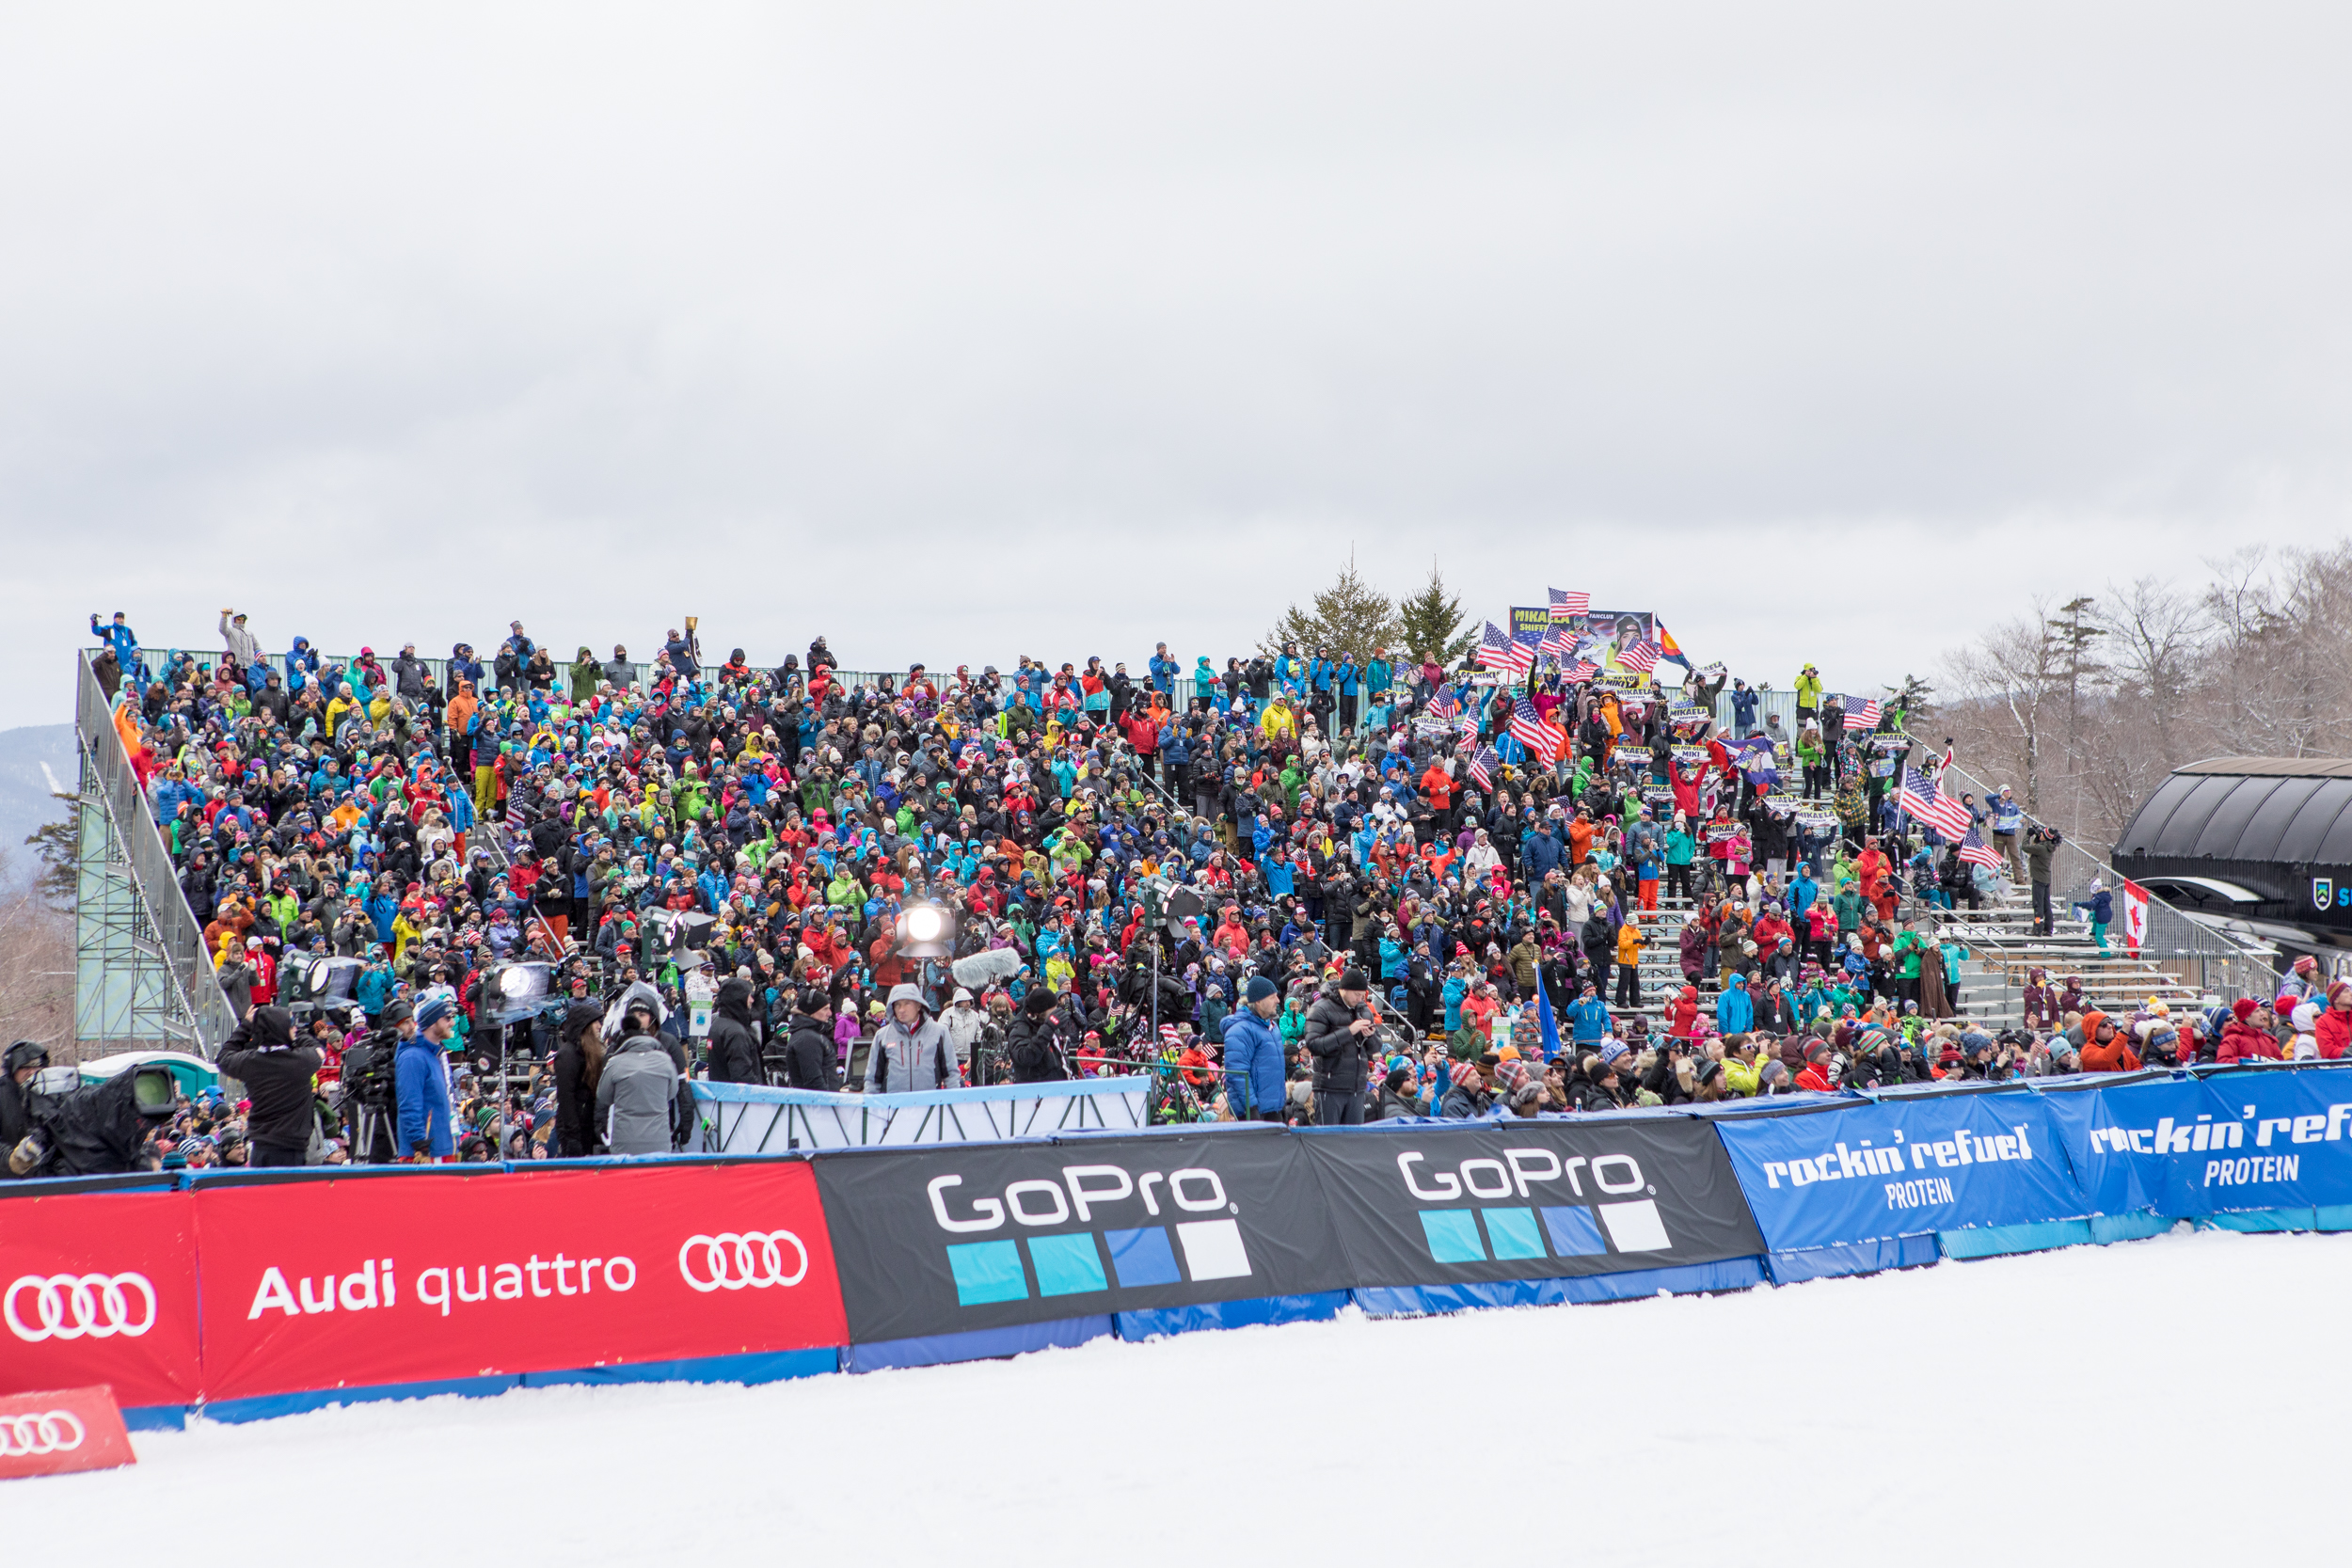 Killington-World-Cup-Grandstand-Crowd.jpg